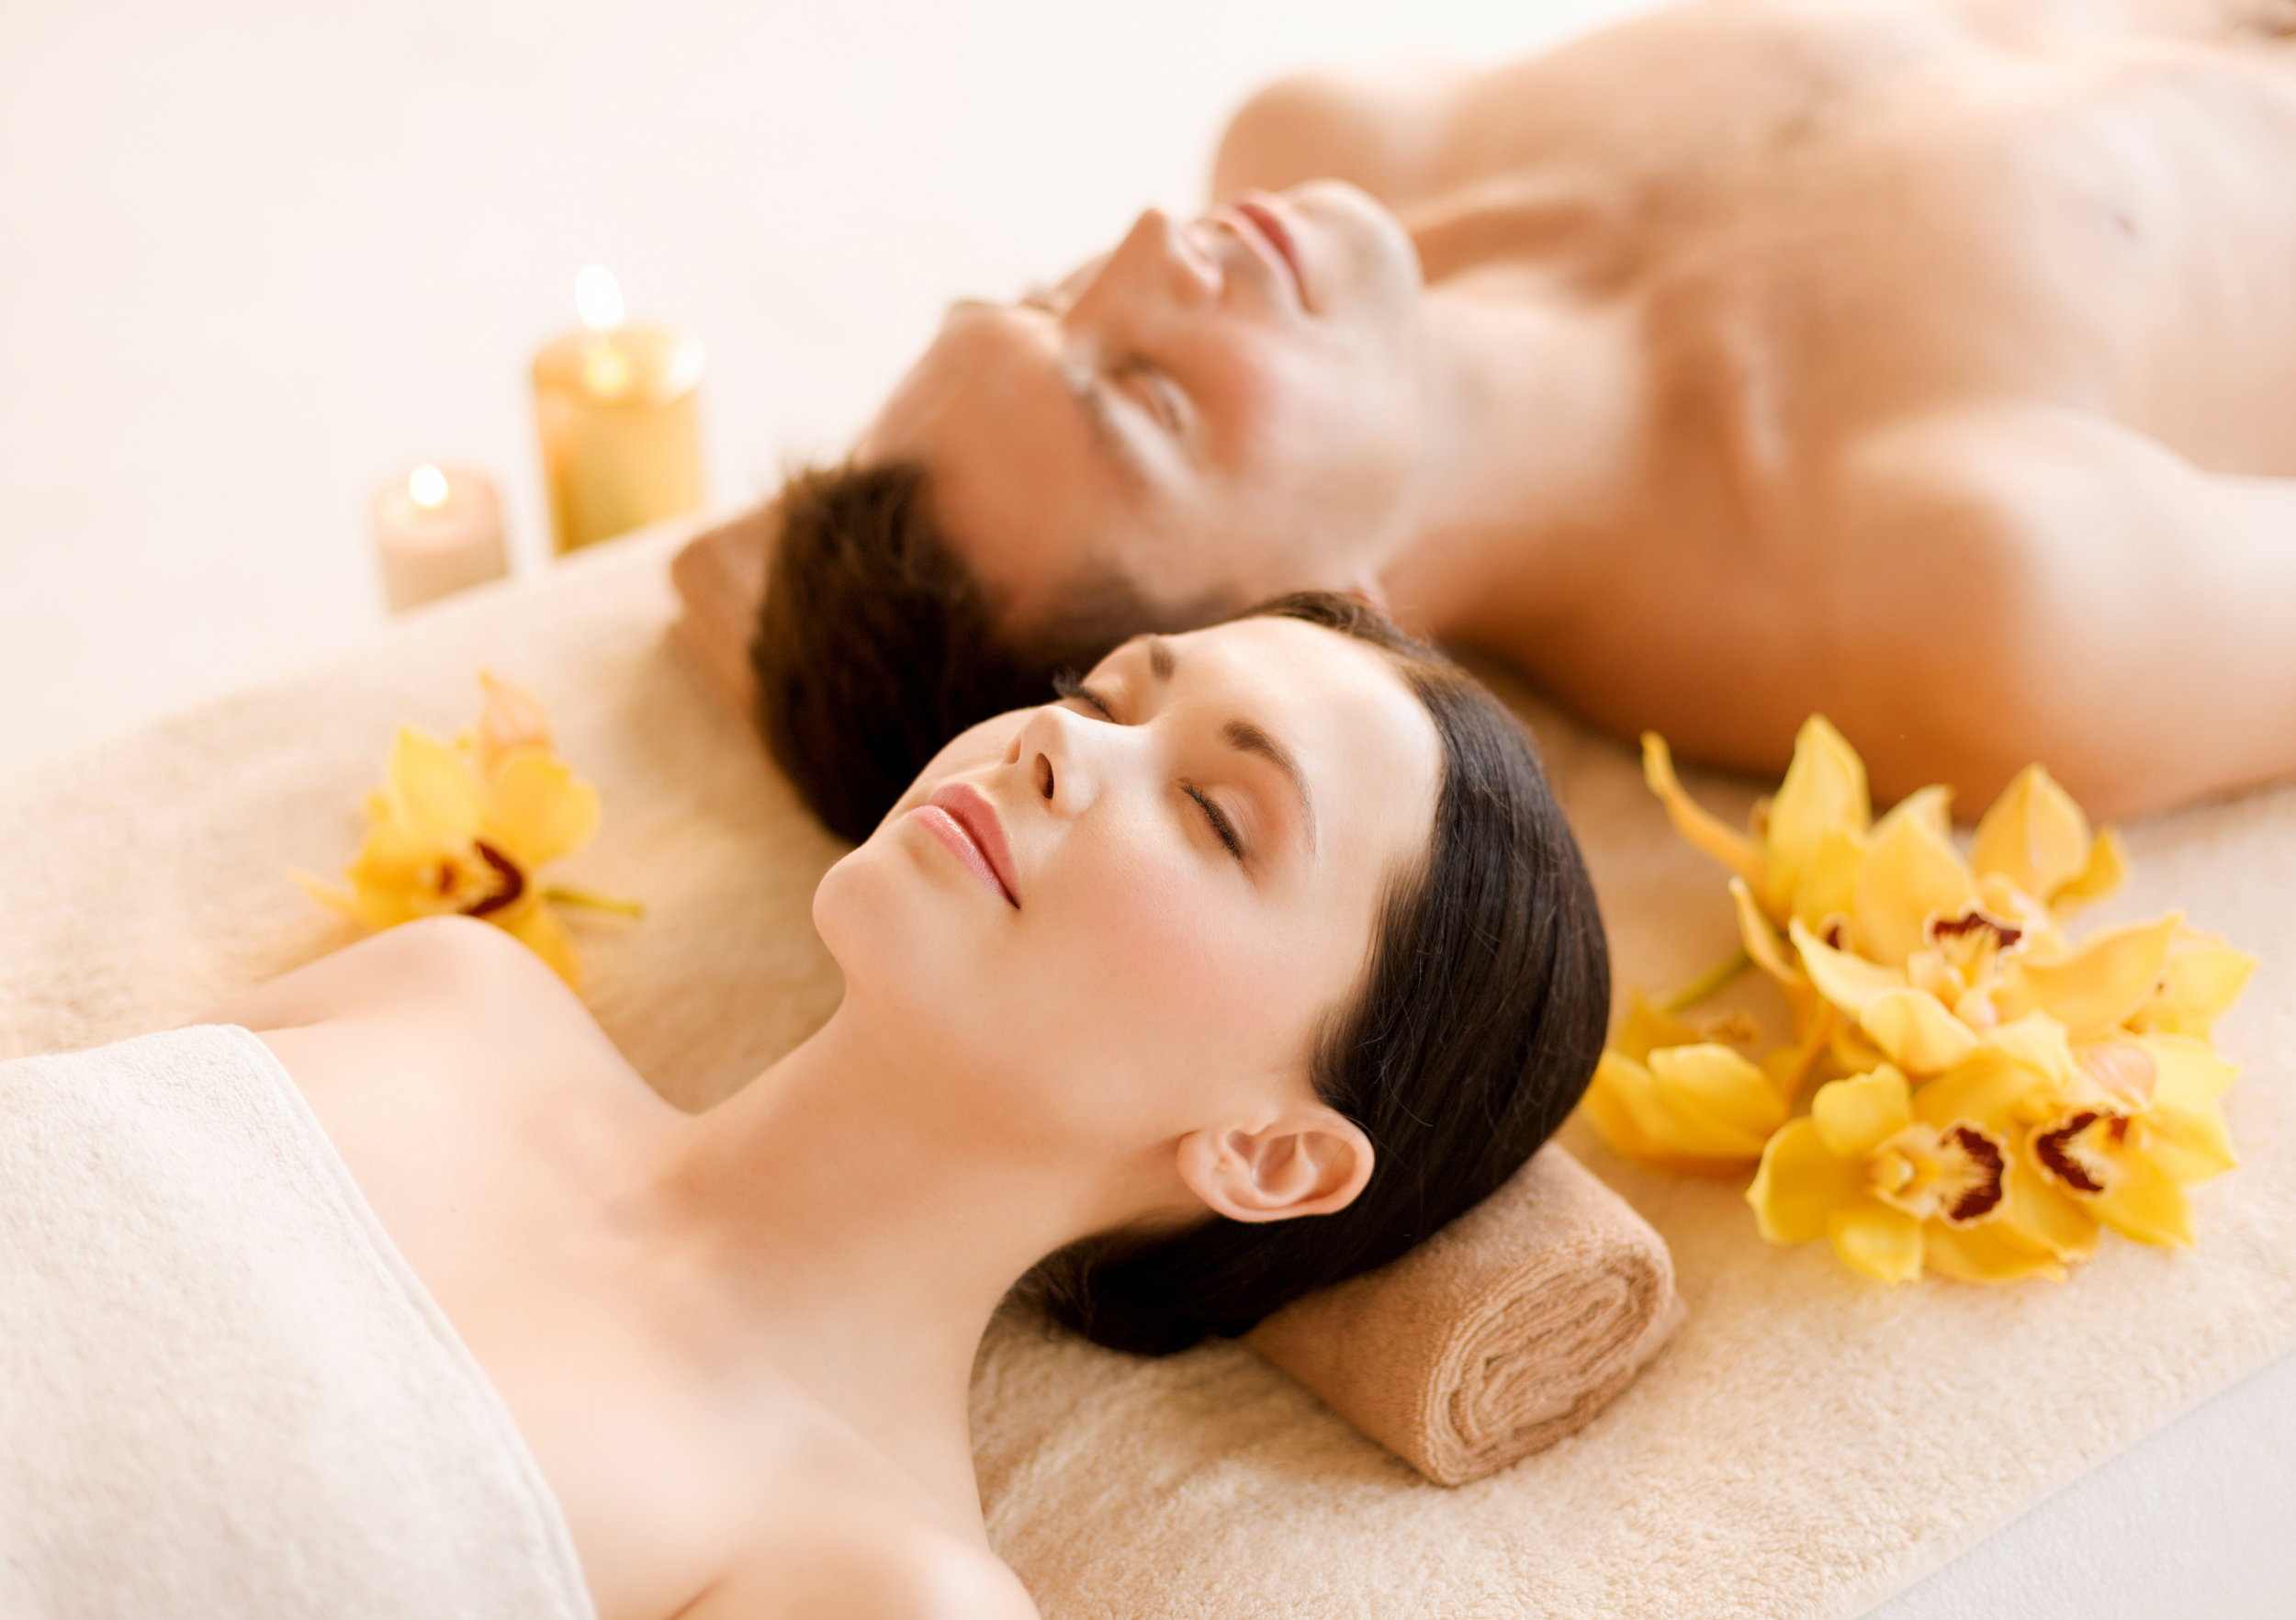 couple in spa.jpeg